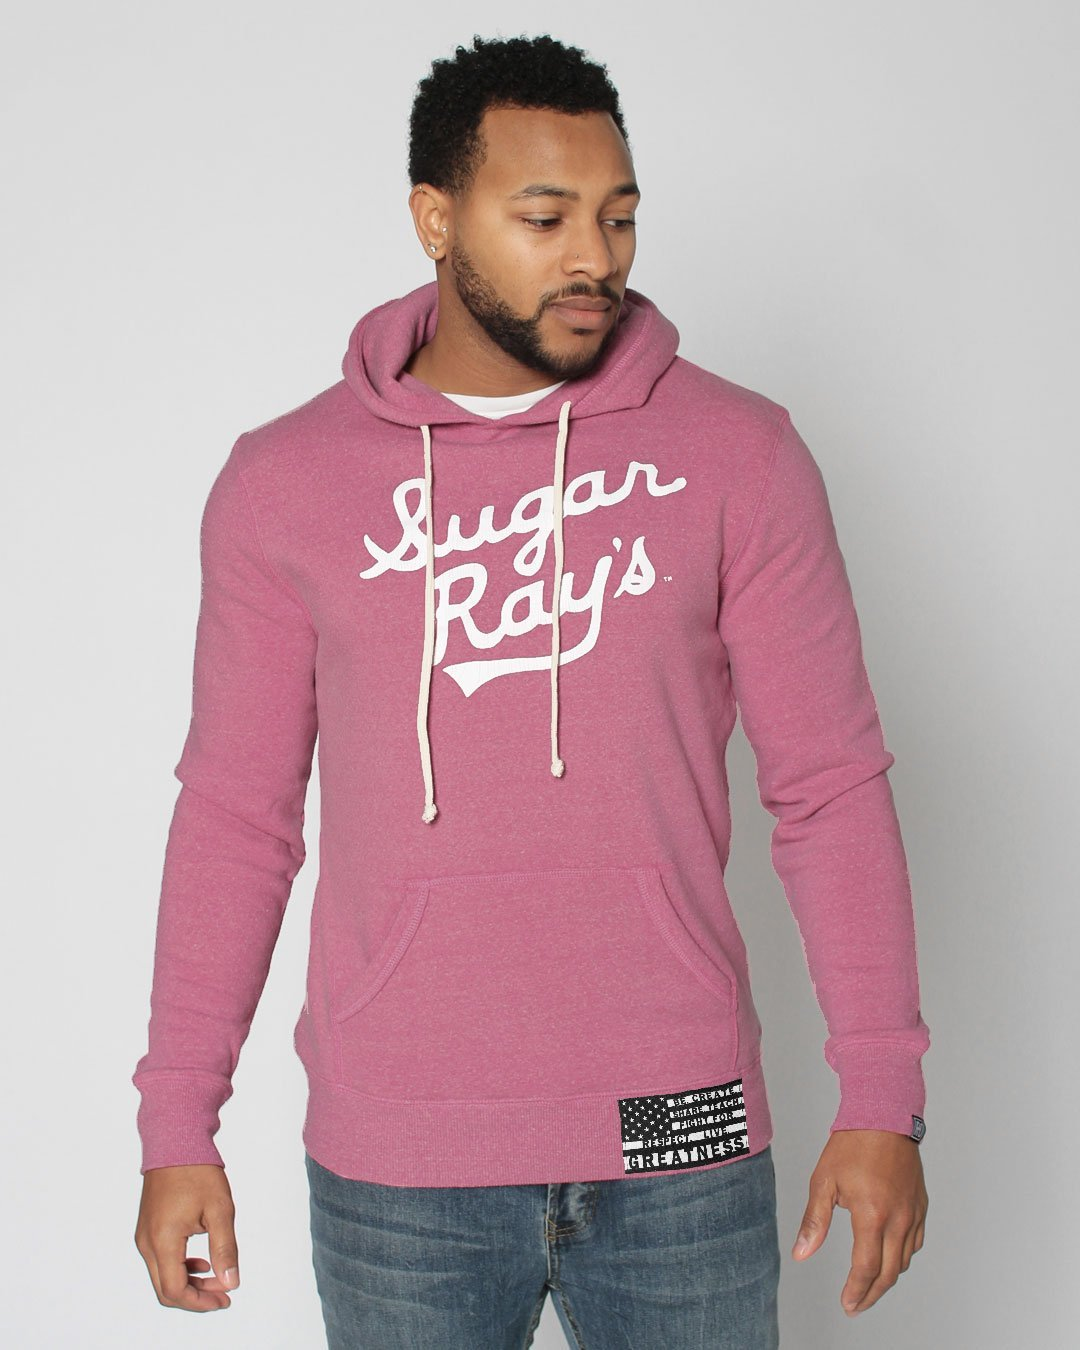 BHT - Sugar Ray Robinson Pullover Hoody - Roots of Inc dba Roots of Fight